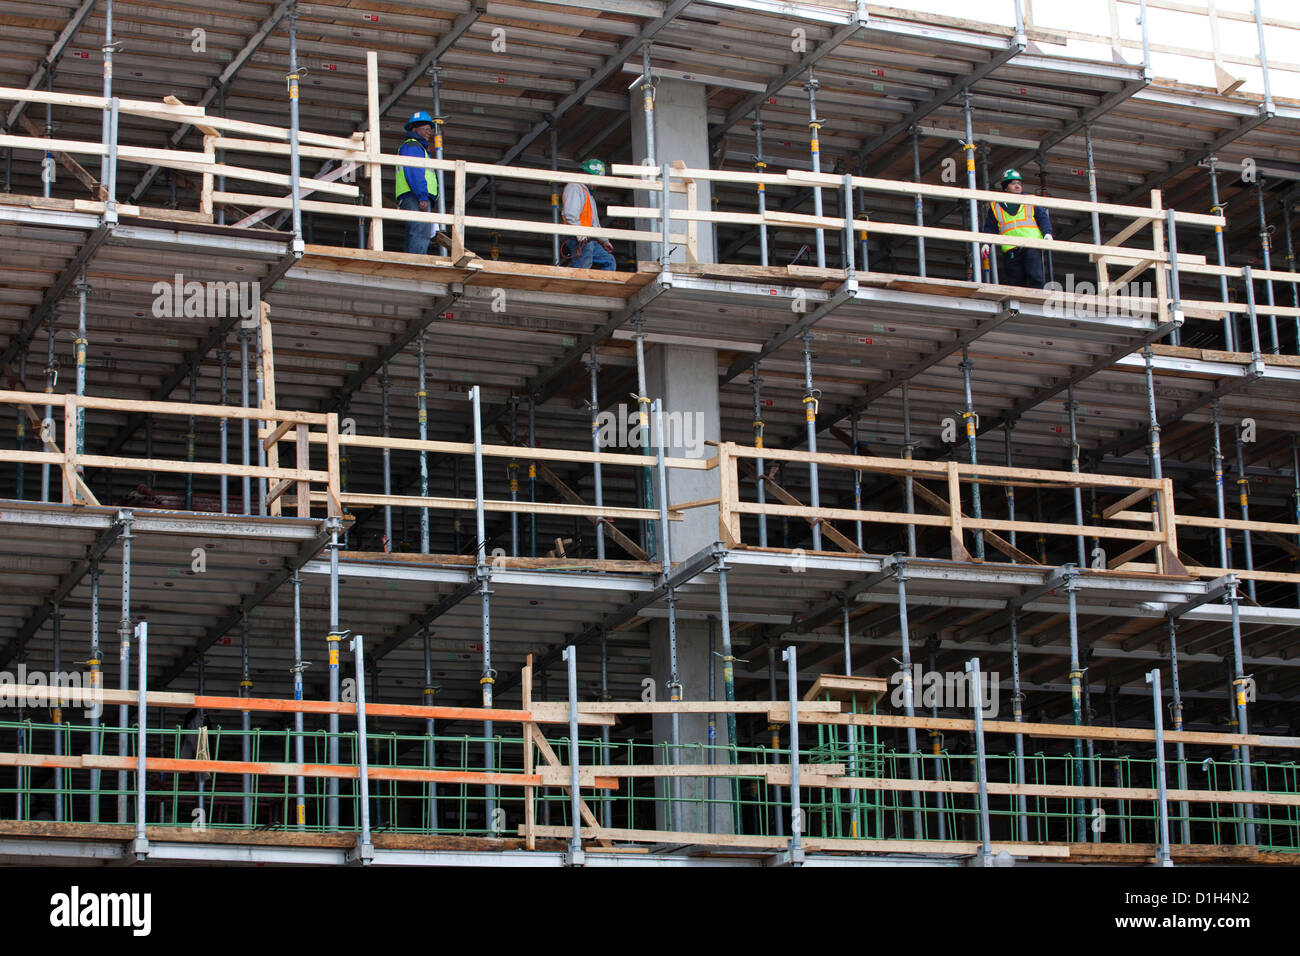 Shoring system used as temporary floor support during building construction - Stock Image